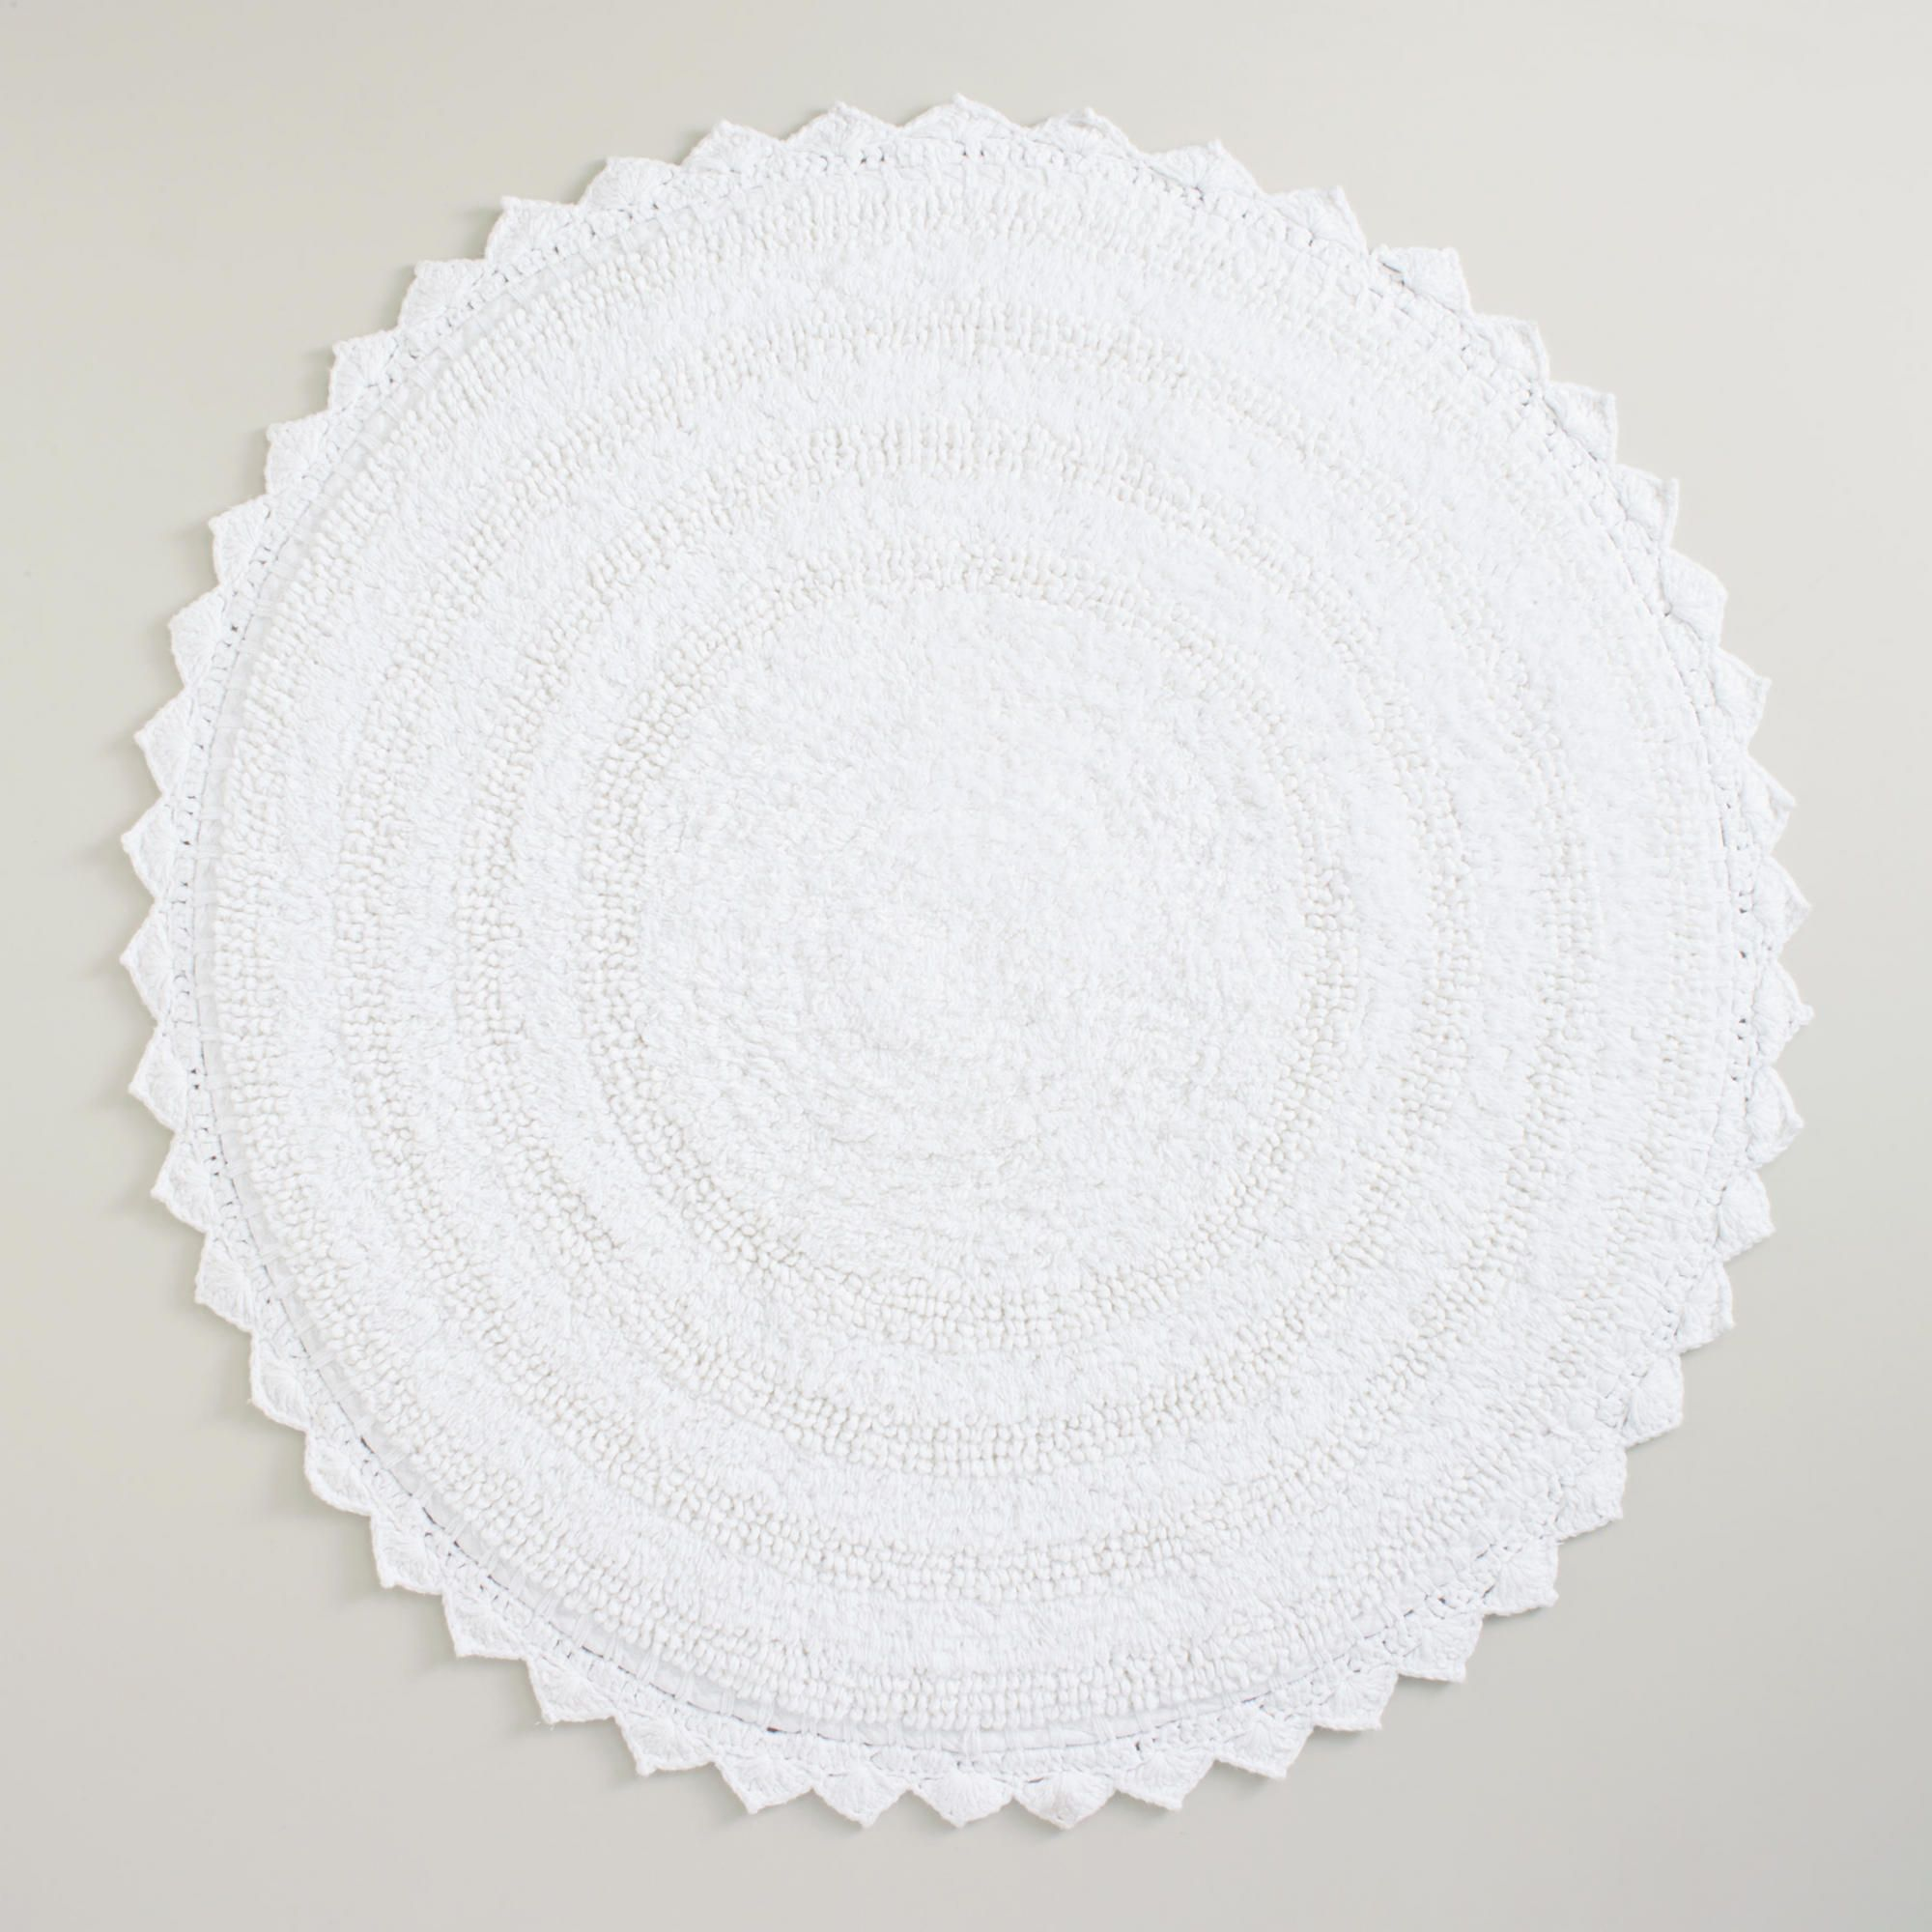 White Round Bath Mat World Market Home DecorIdeas Pinterest - Black round bath rug for bathroom decorating ideas